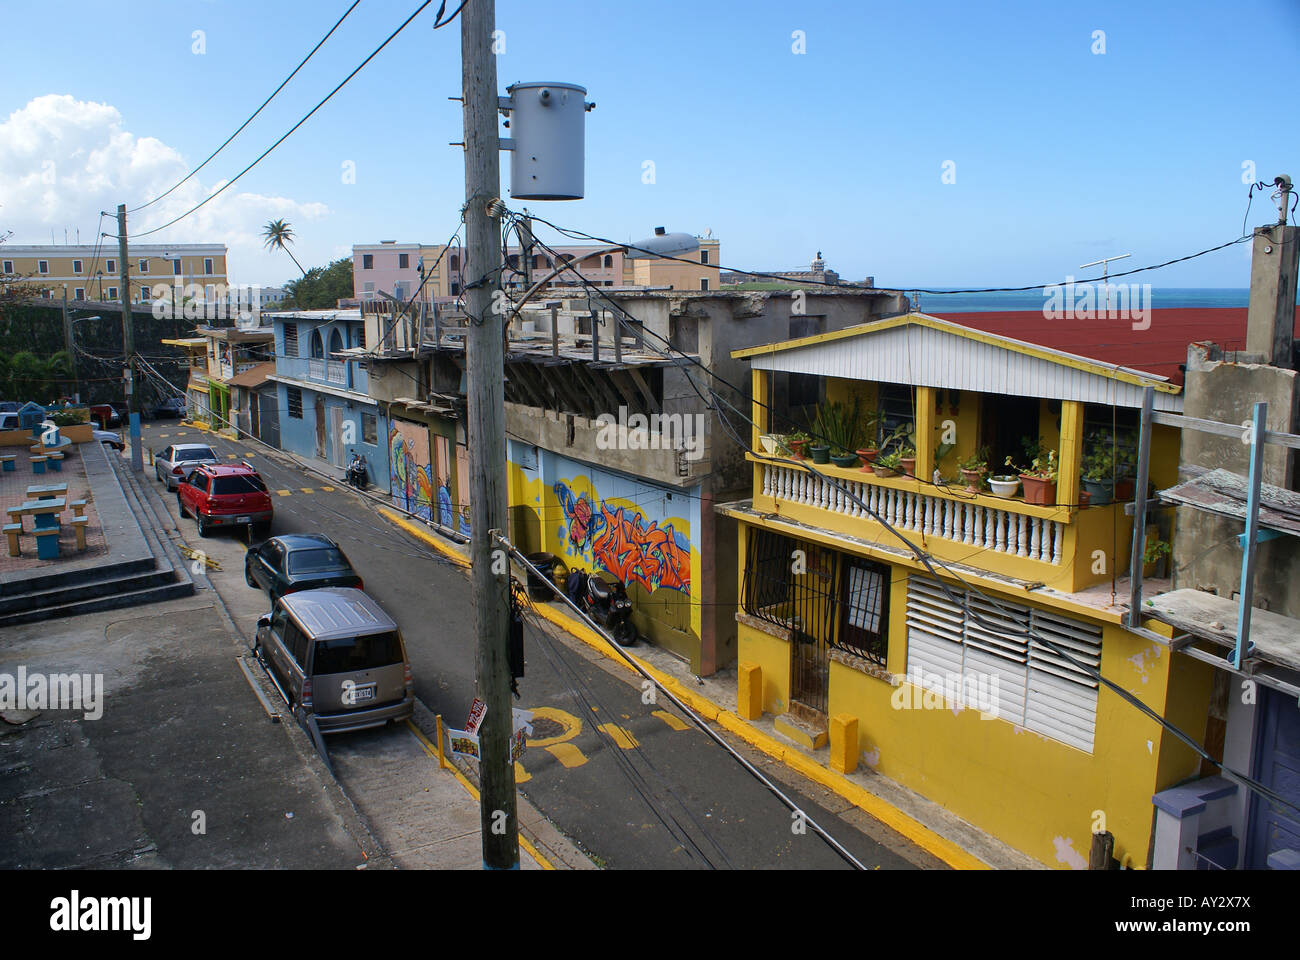 Slums in Old San Juan, Puerto Rico - Stock Image